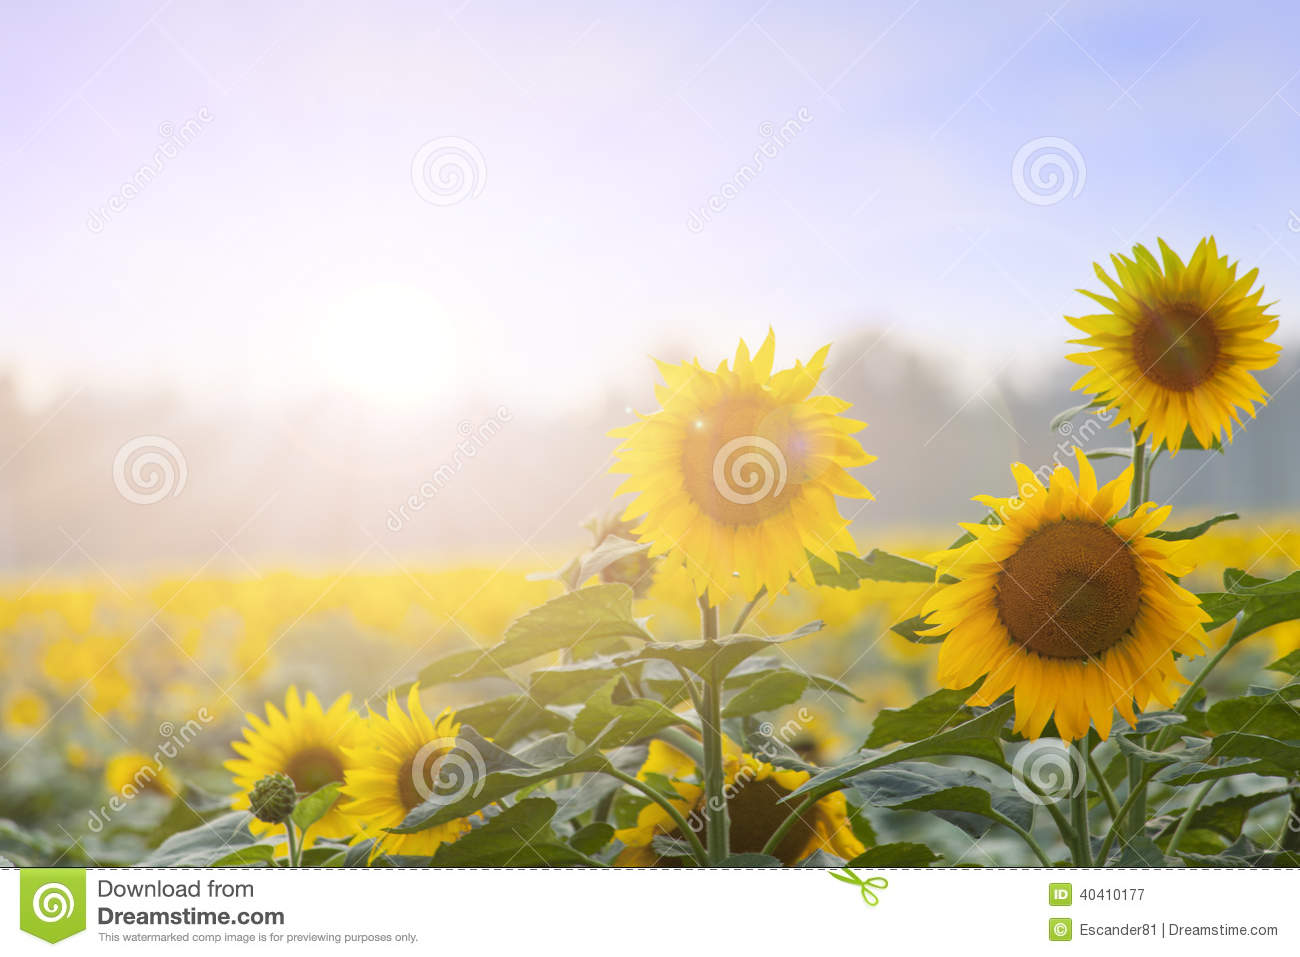 Summer time: Three sunflowers at dawn